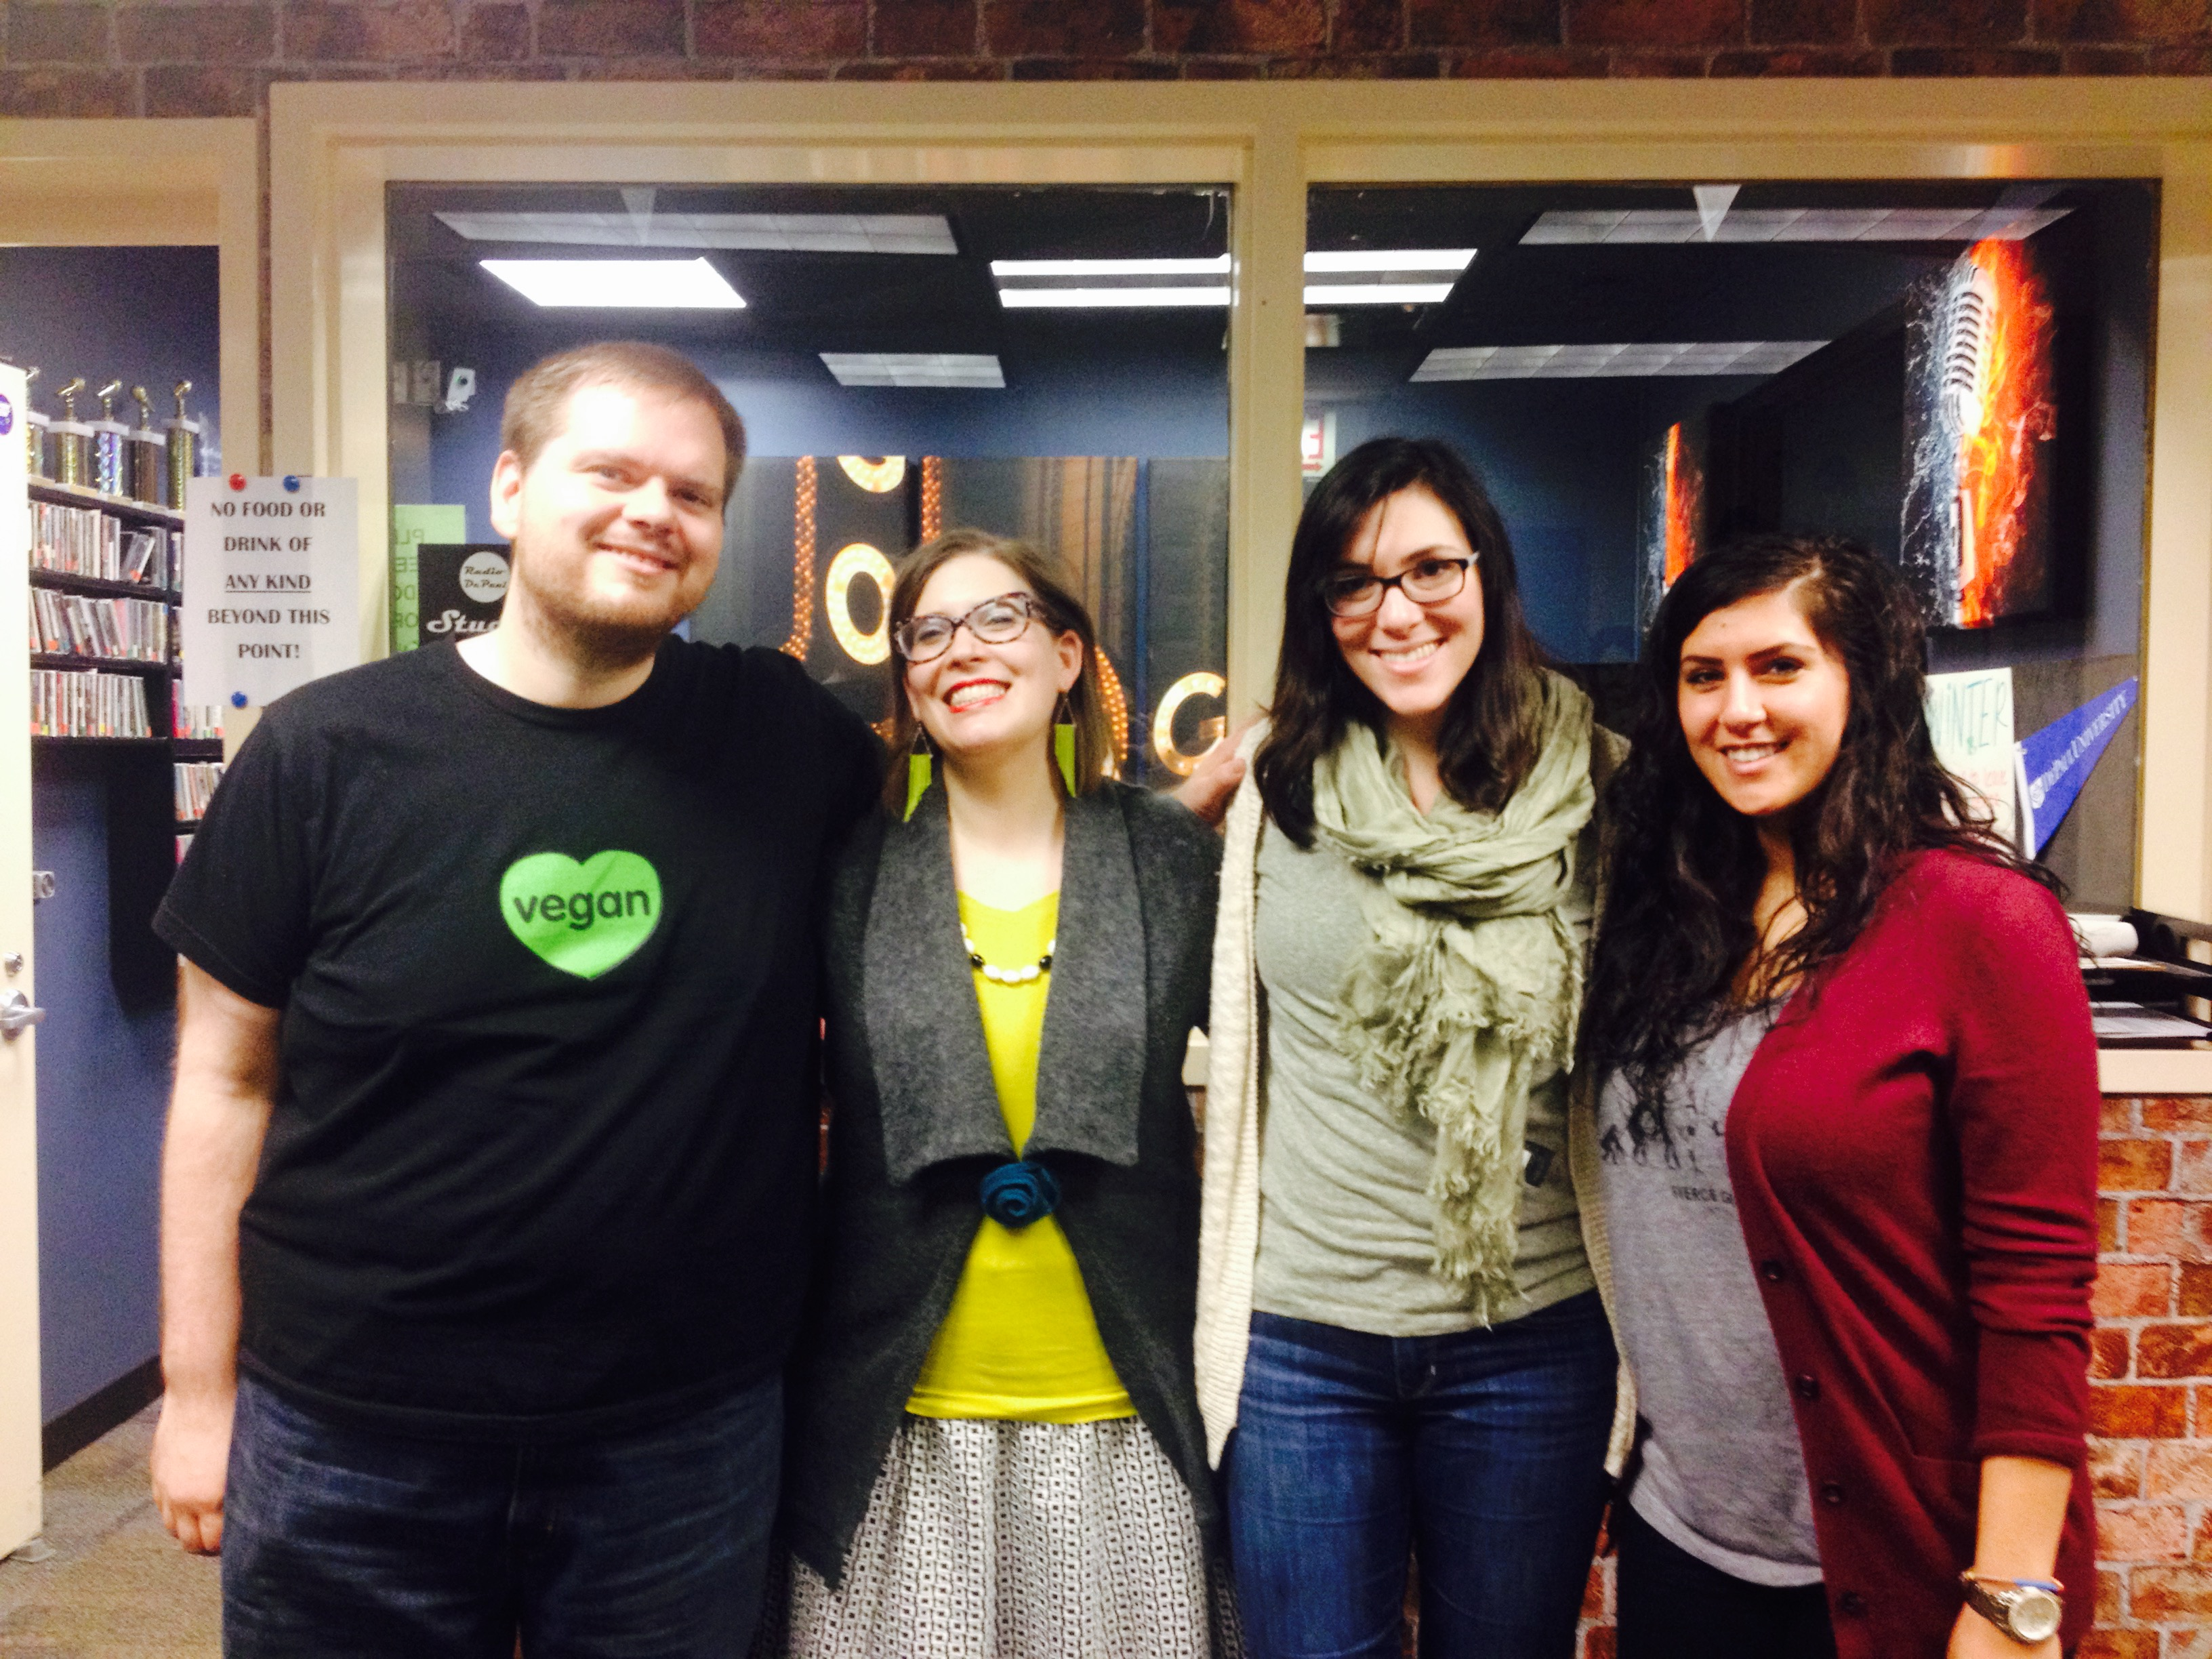 This week (L-R) Brandon, Jen Finstrom, Megan, and Rima talked all about publishing.